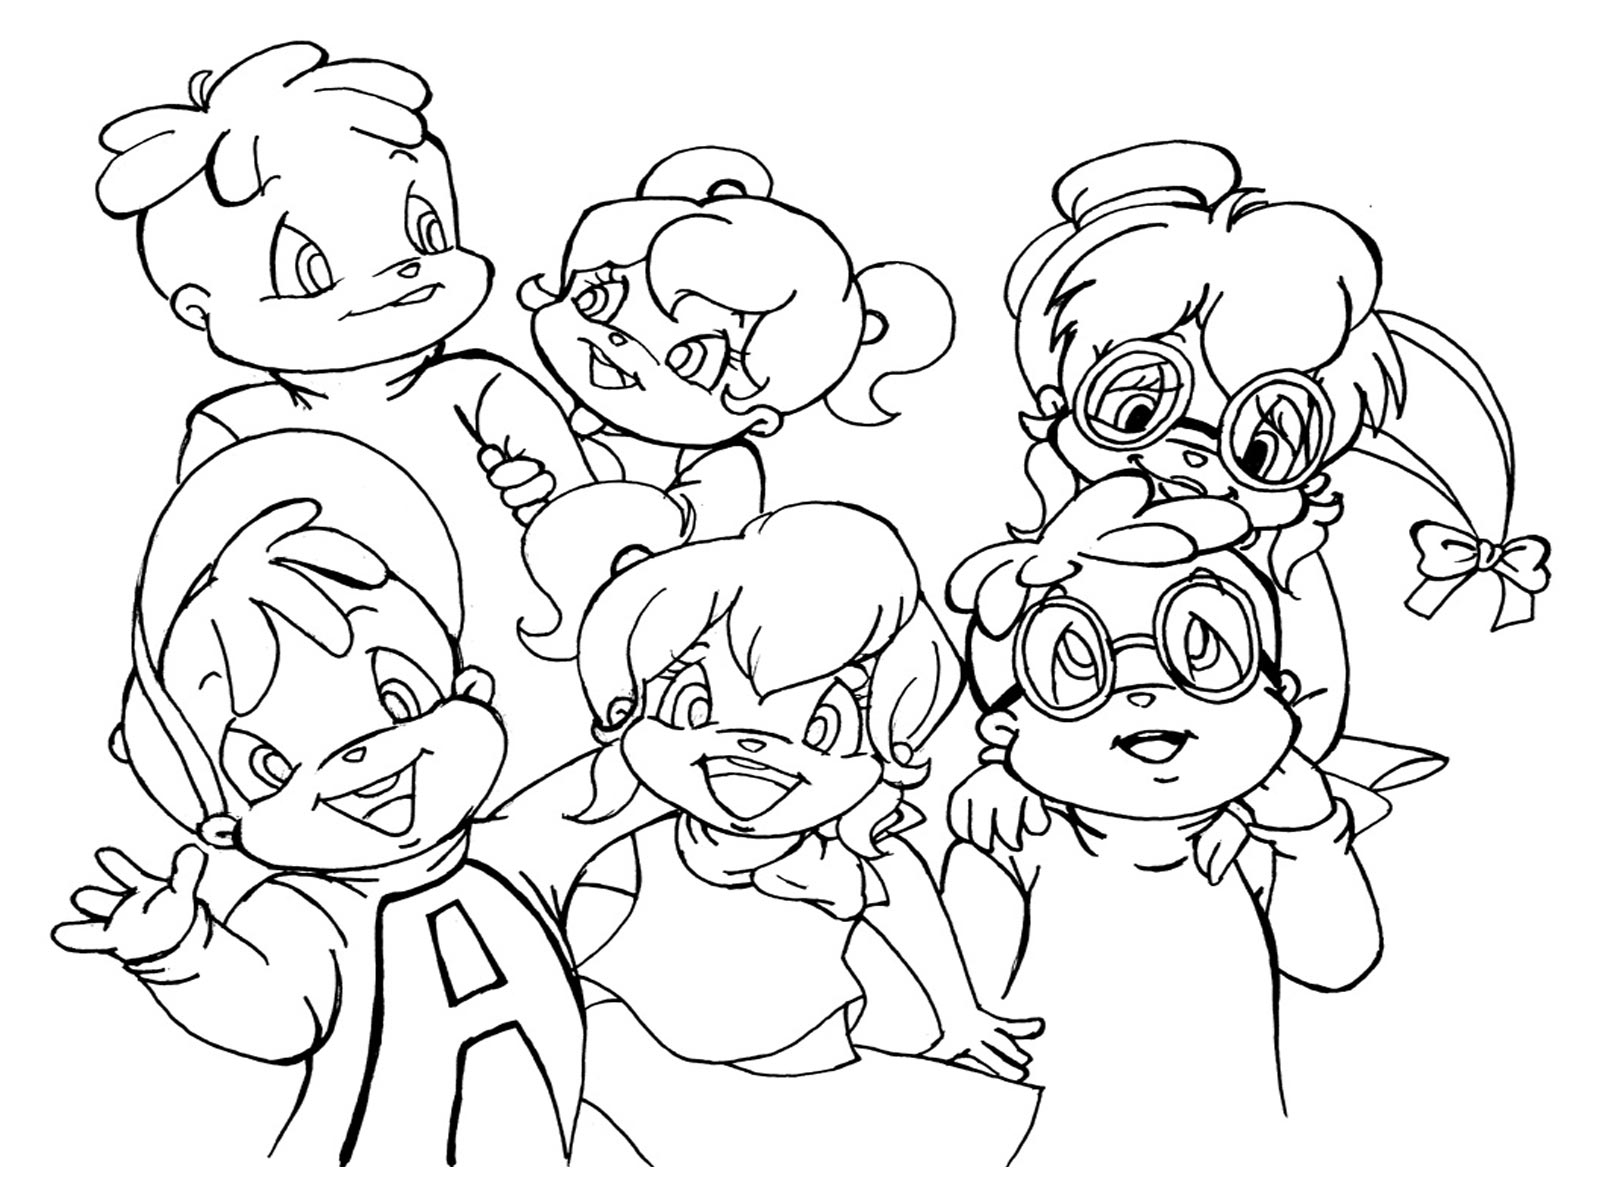 1600x1200 Free Printable Chipettes Coloring Pages For Kids The Chipettes